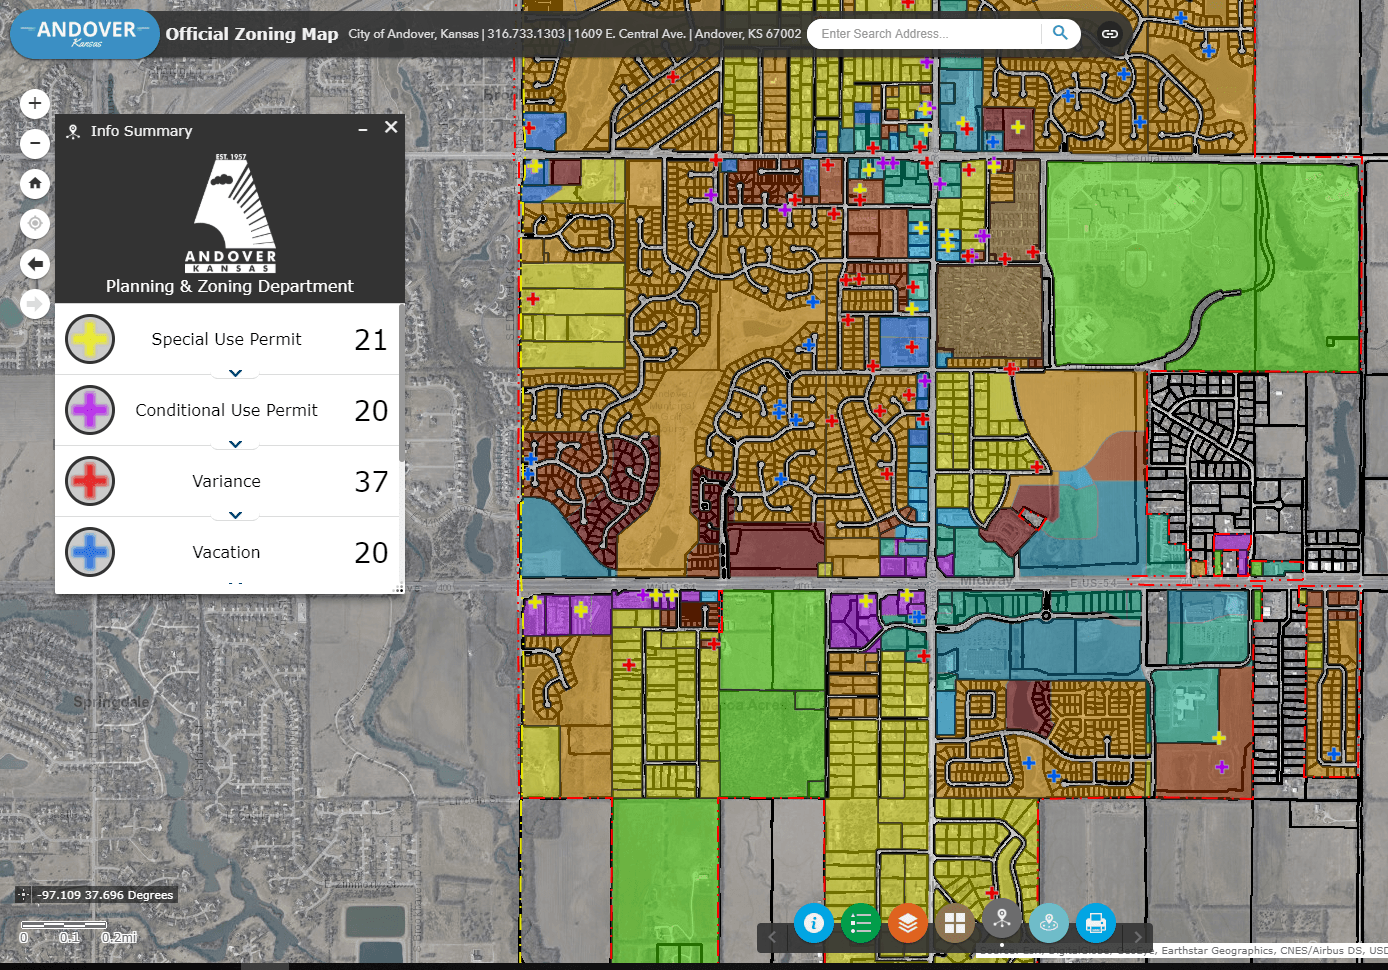 Official Zoning Map